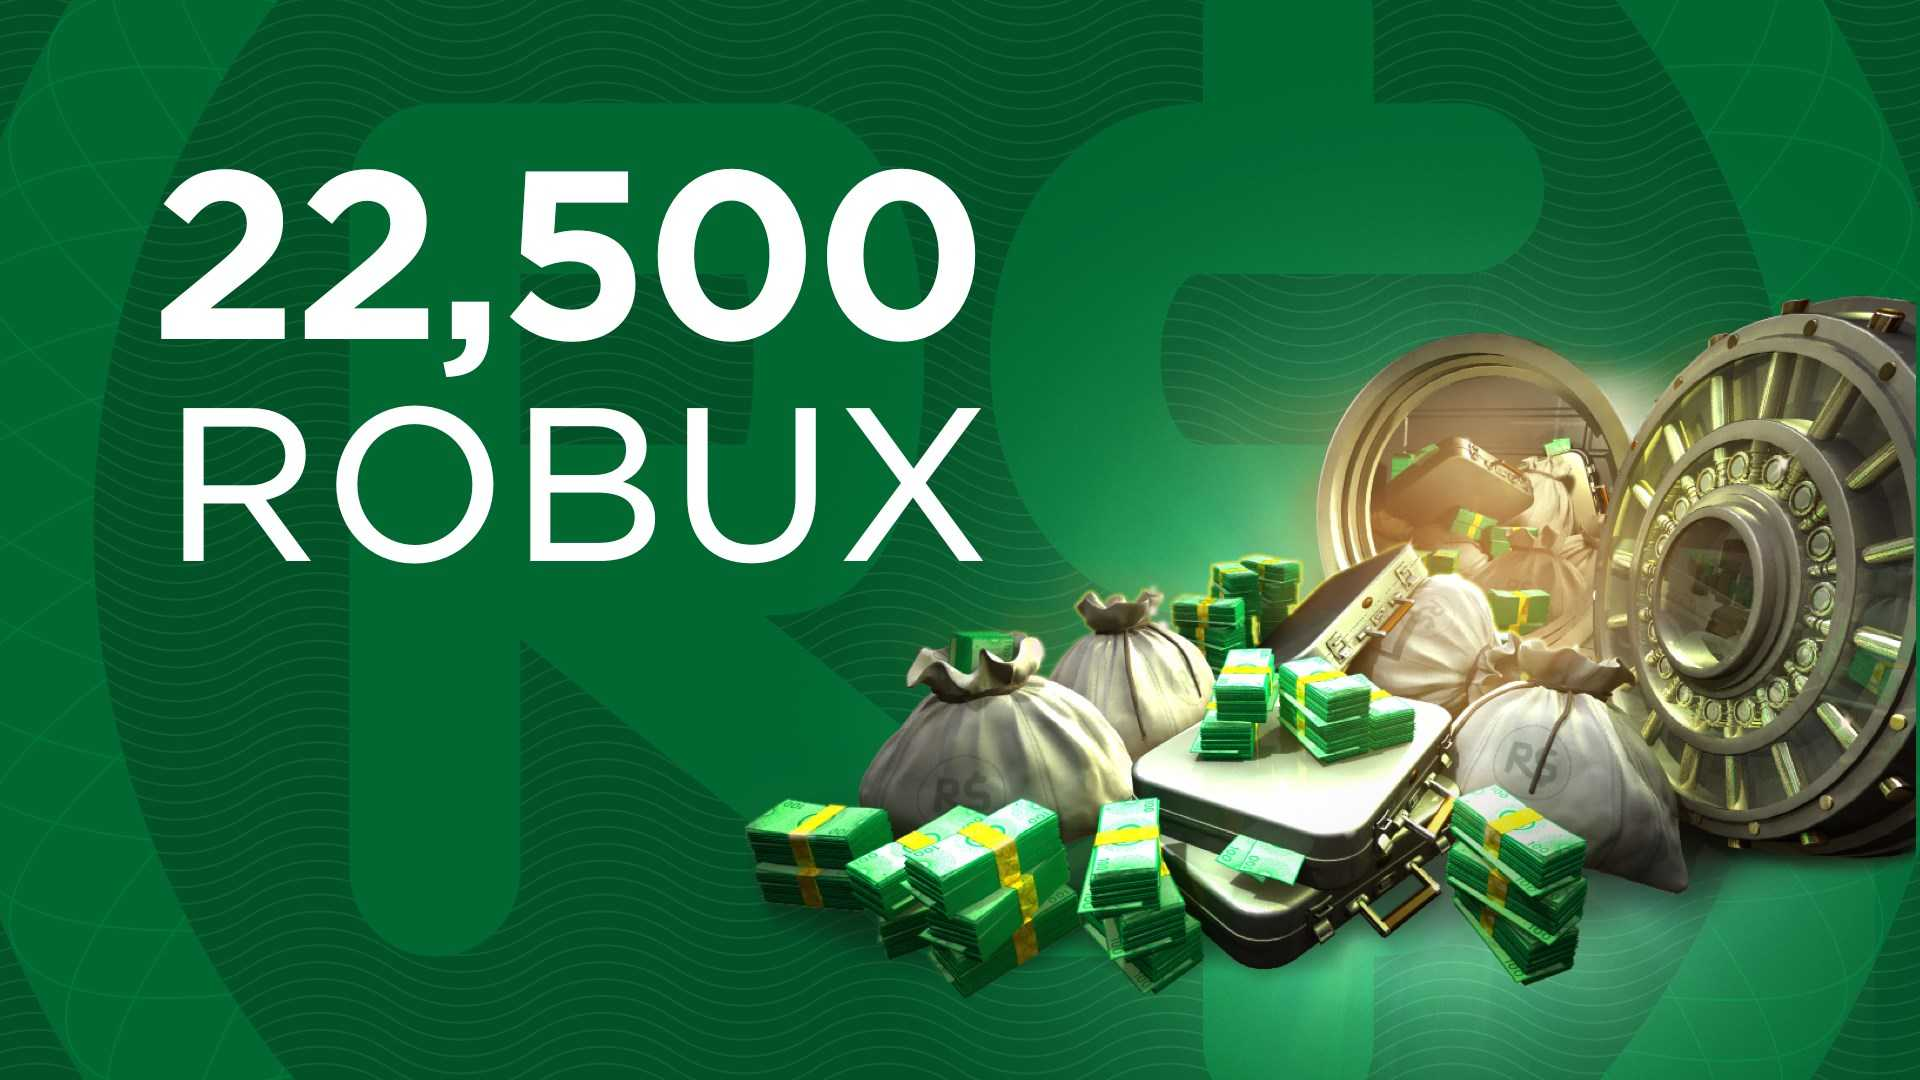 Buy 22,500 Robux for Xbox - Xbox Store Checker